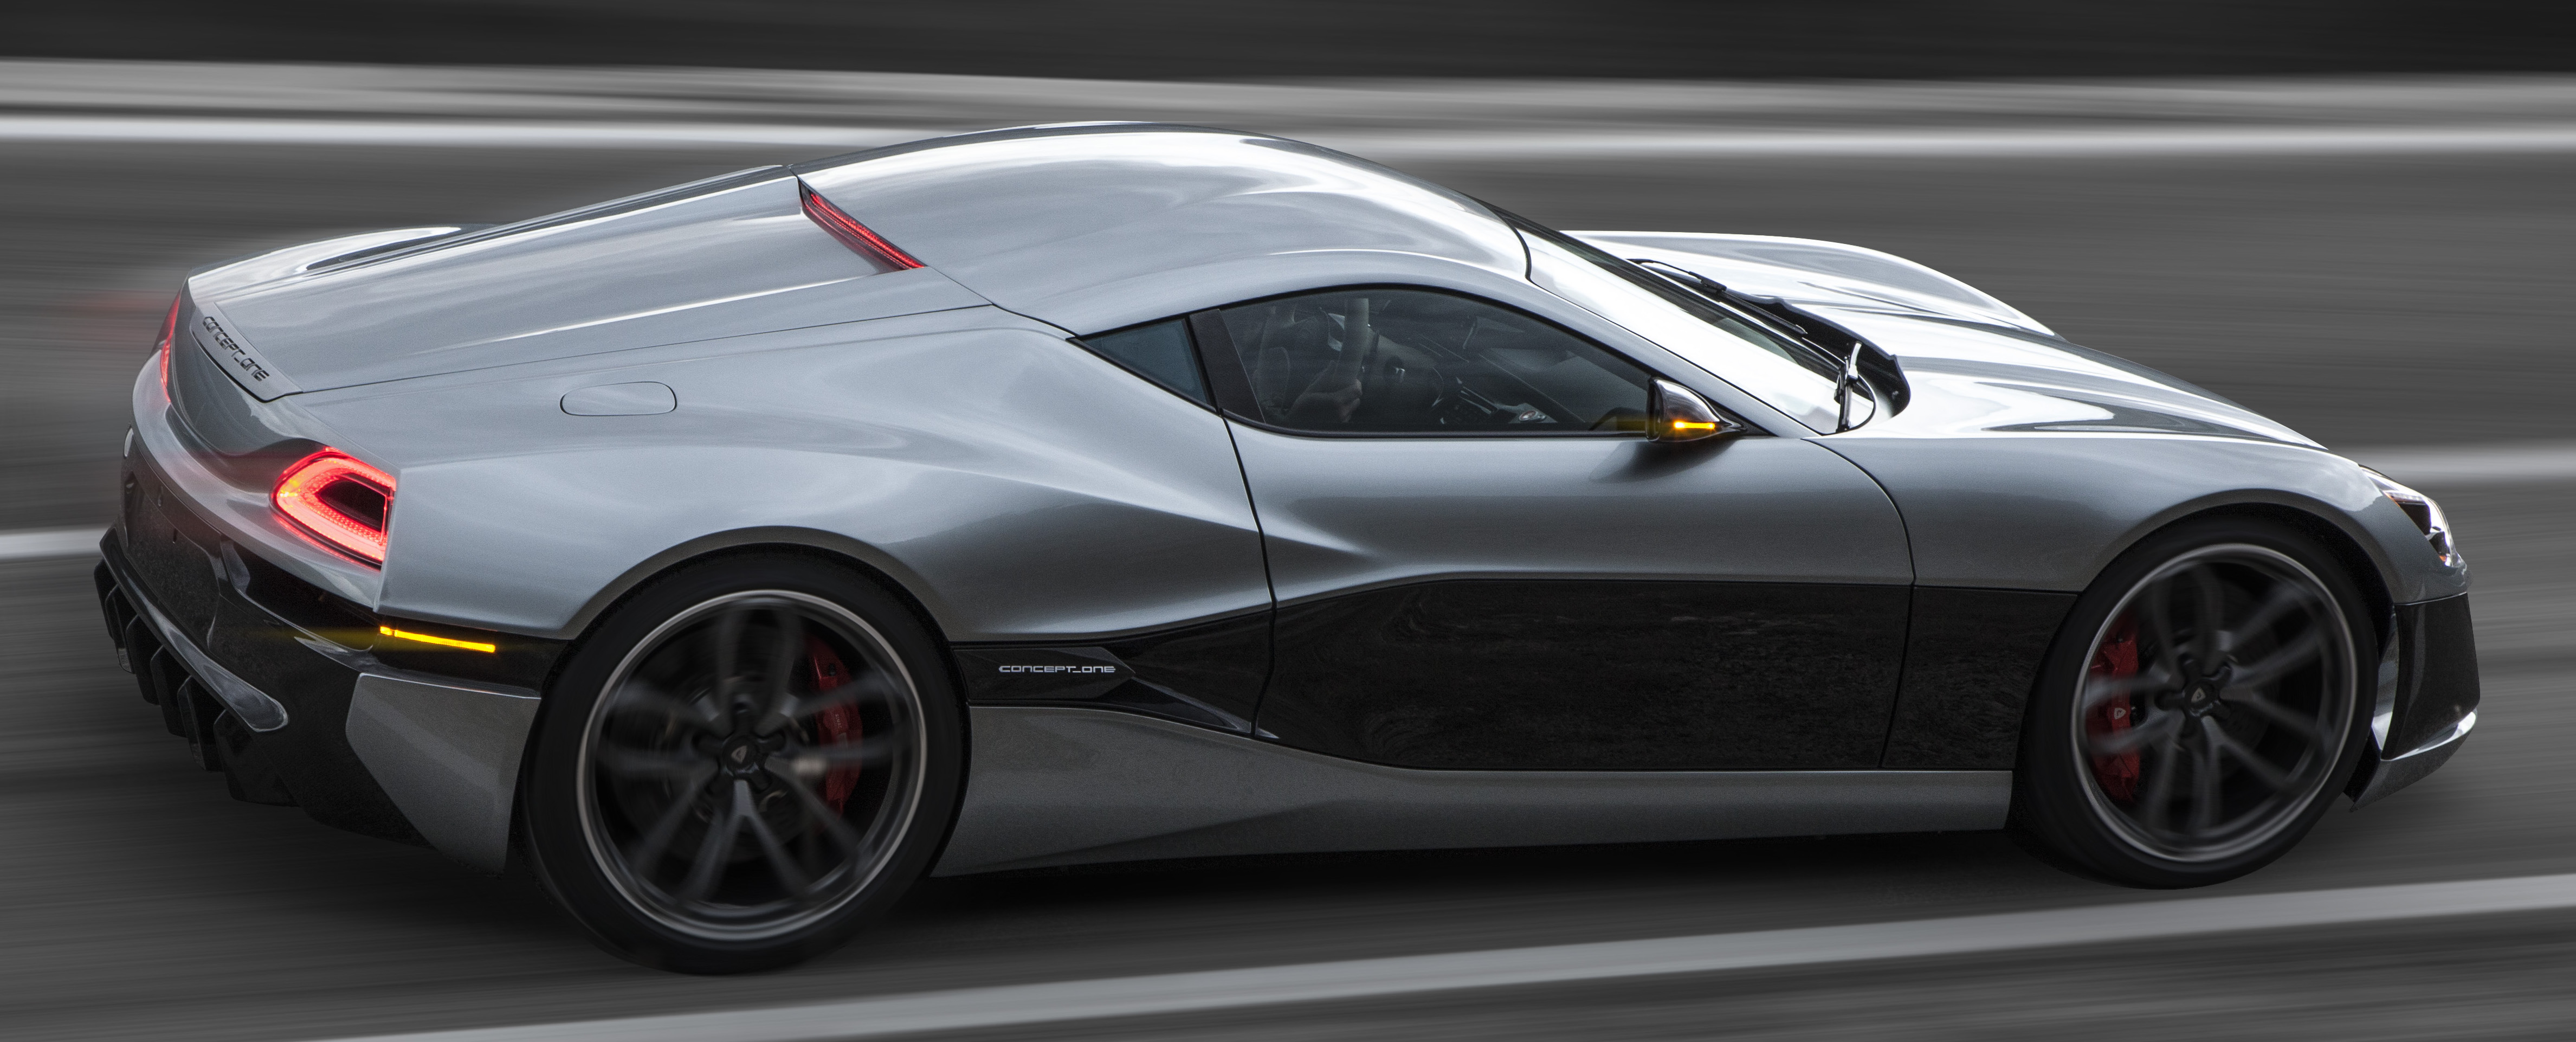 Rimac Concept One All Electric Hypercar 1 088 Hp Paul Tan Image 446446